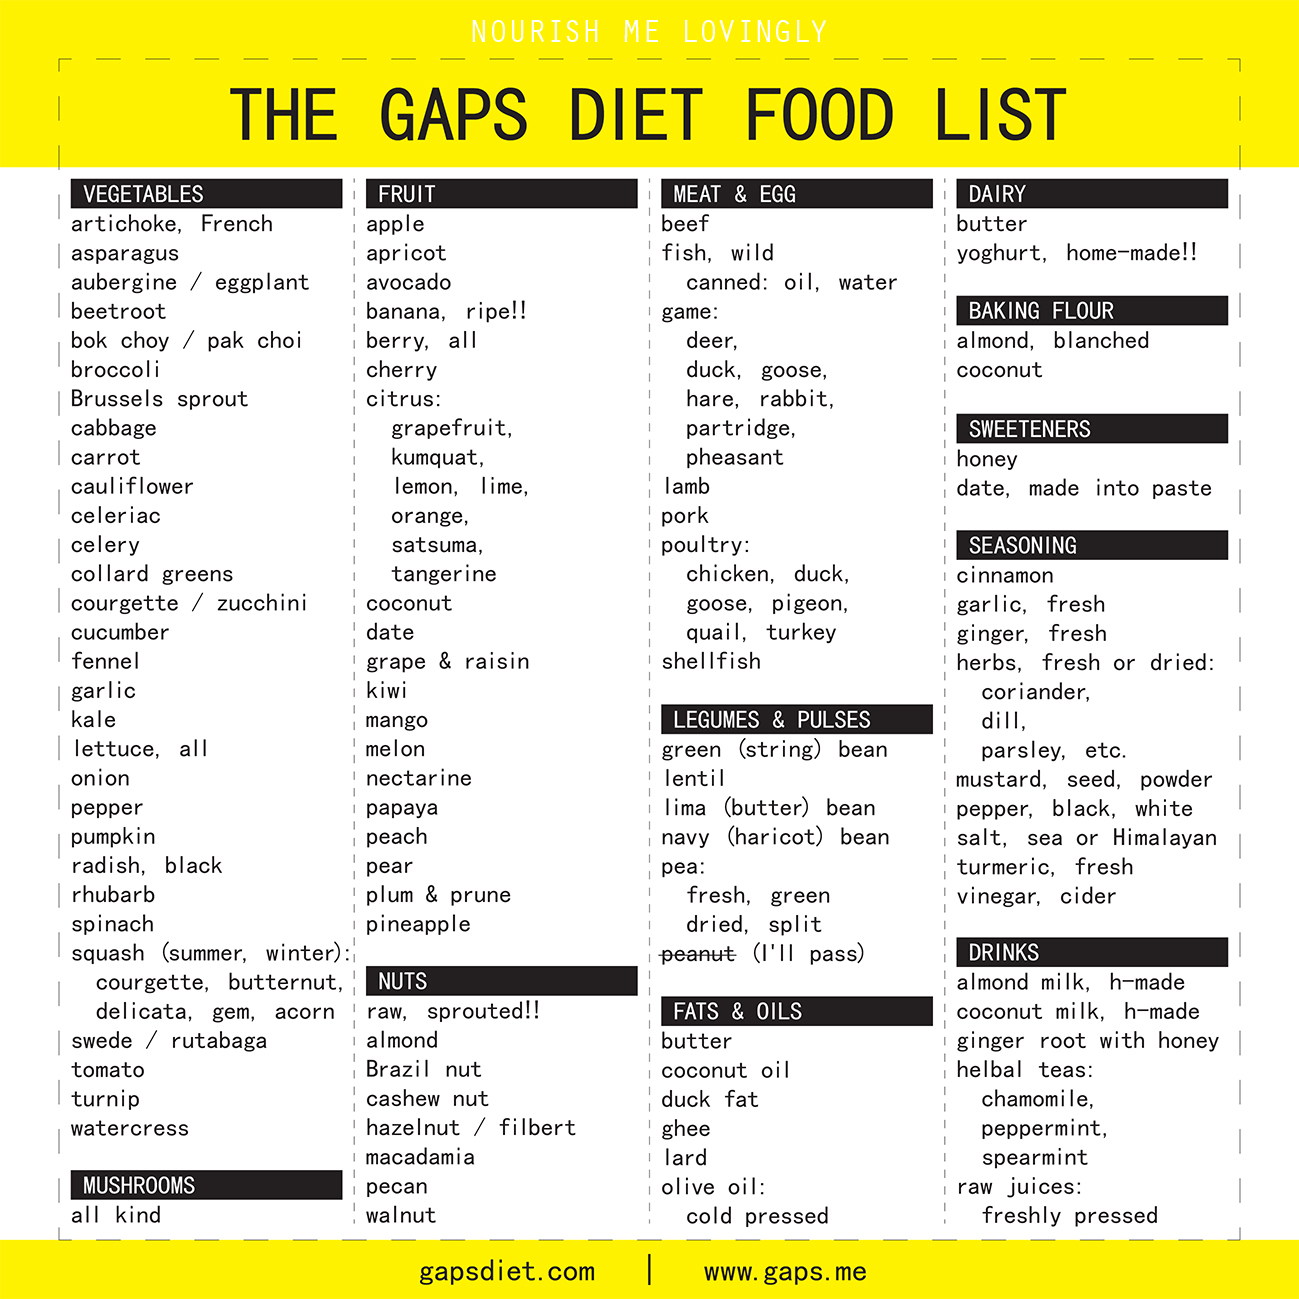 how to follow the gaps diet